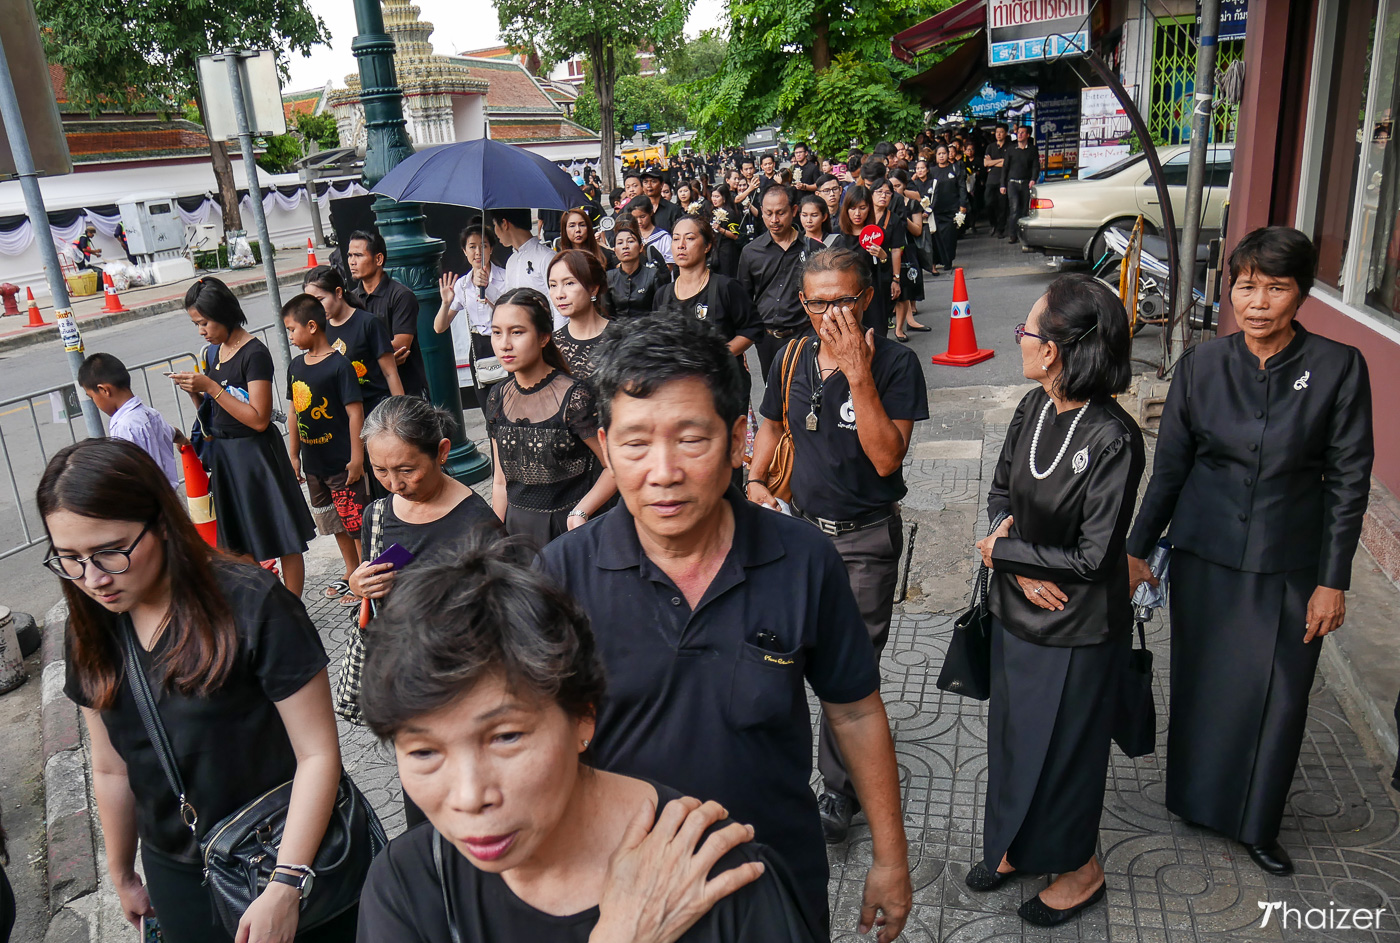 Mourners in Bangkok queue patiently to pay their final respects to the King